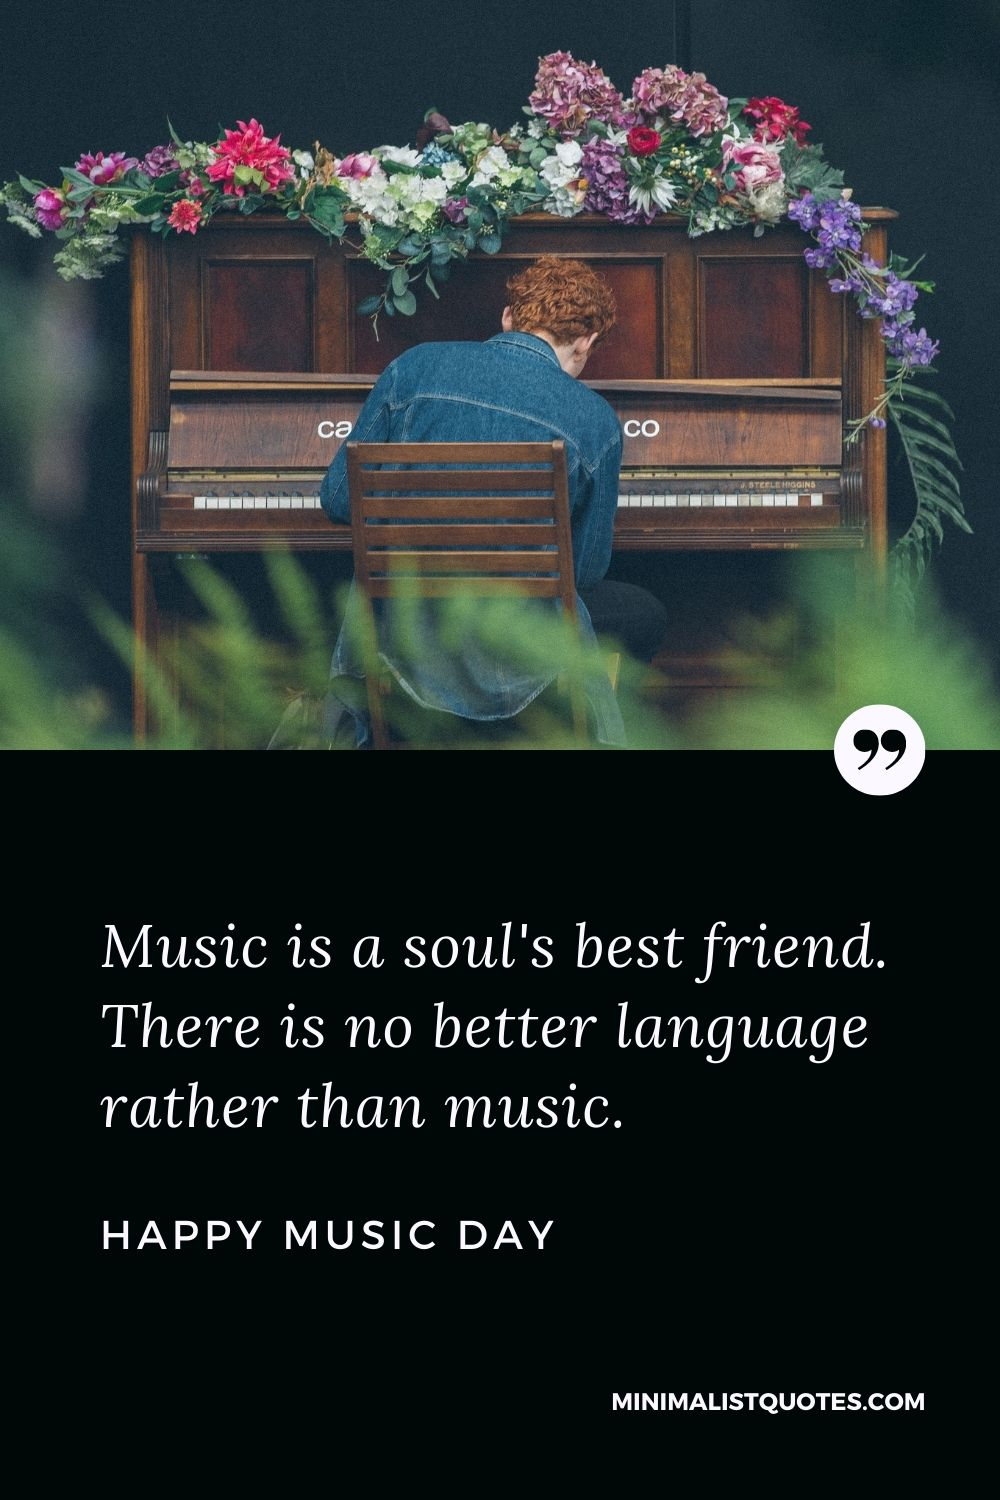 World music day wish & HD Poster Image: Music is a soul's best friend. There is no better language rather than music. Happy Music Day!